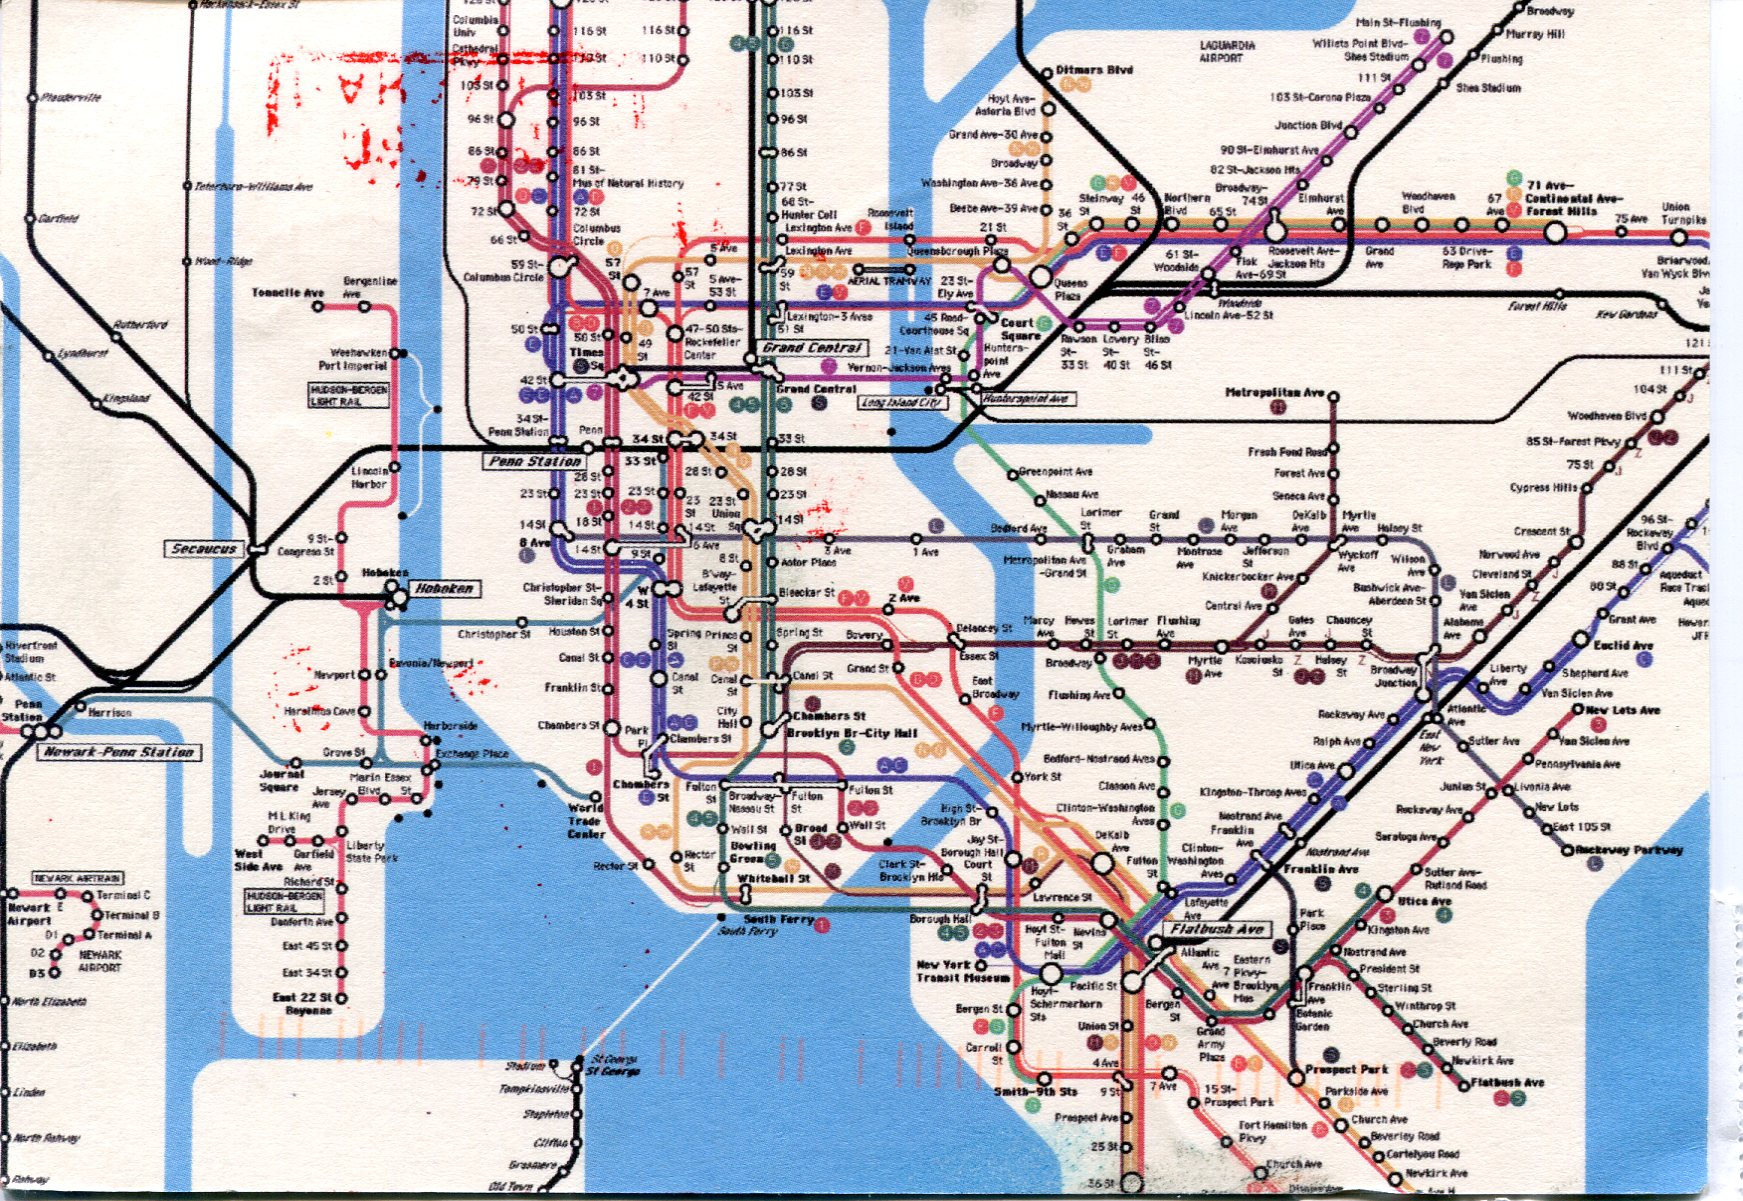 Closer to the first map of bacteria hiding in the New York subway